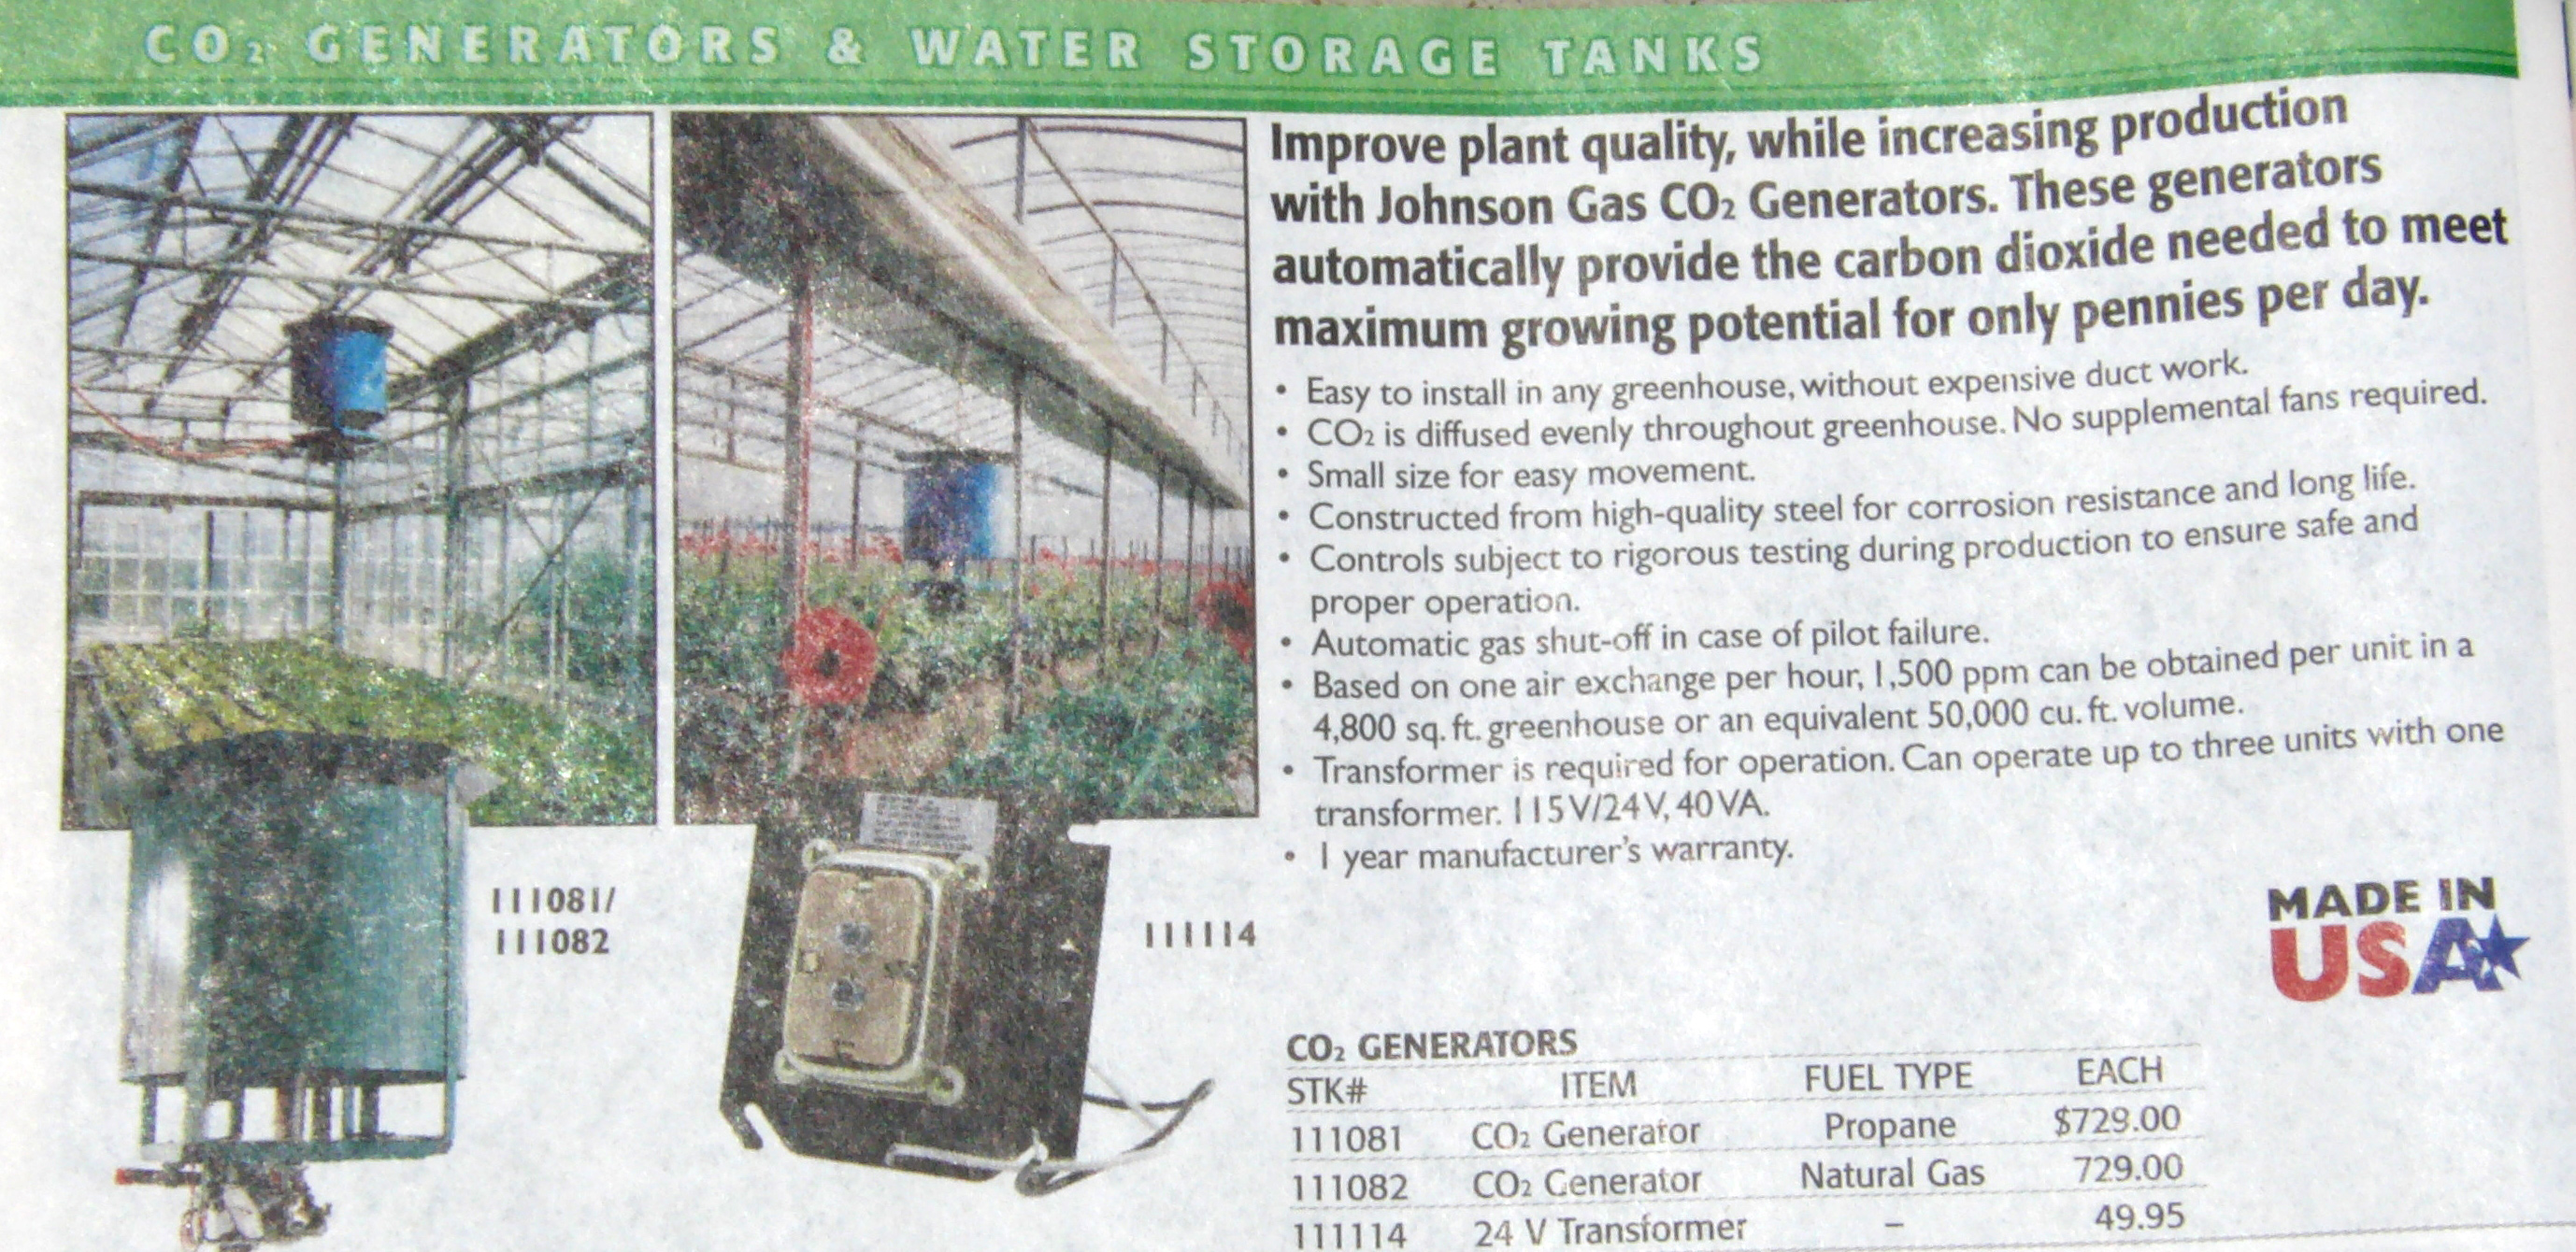 If carbon dioxide is so bad for the planet why do greenhouse